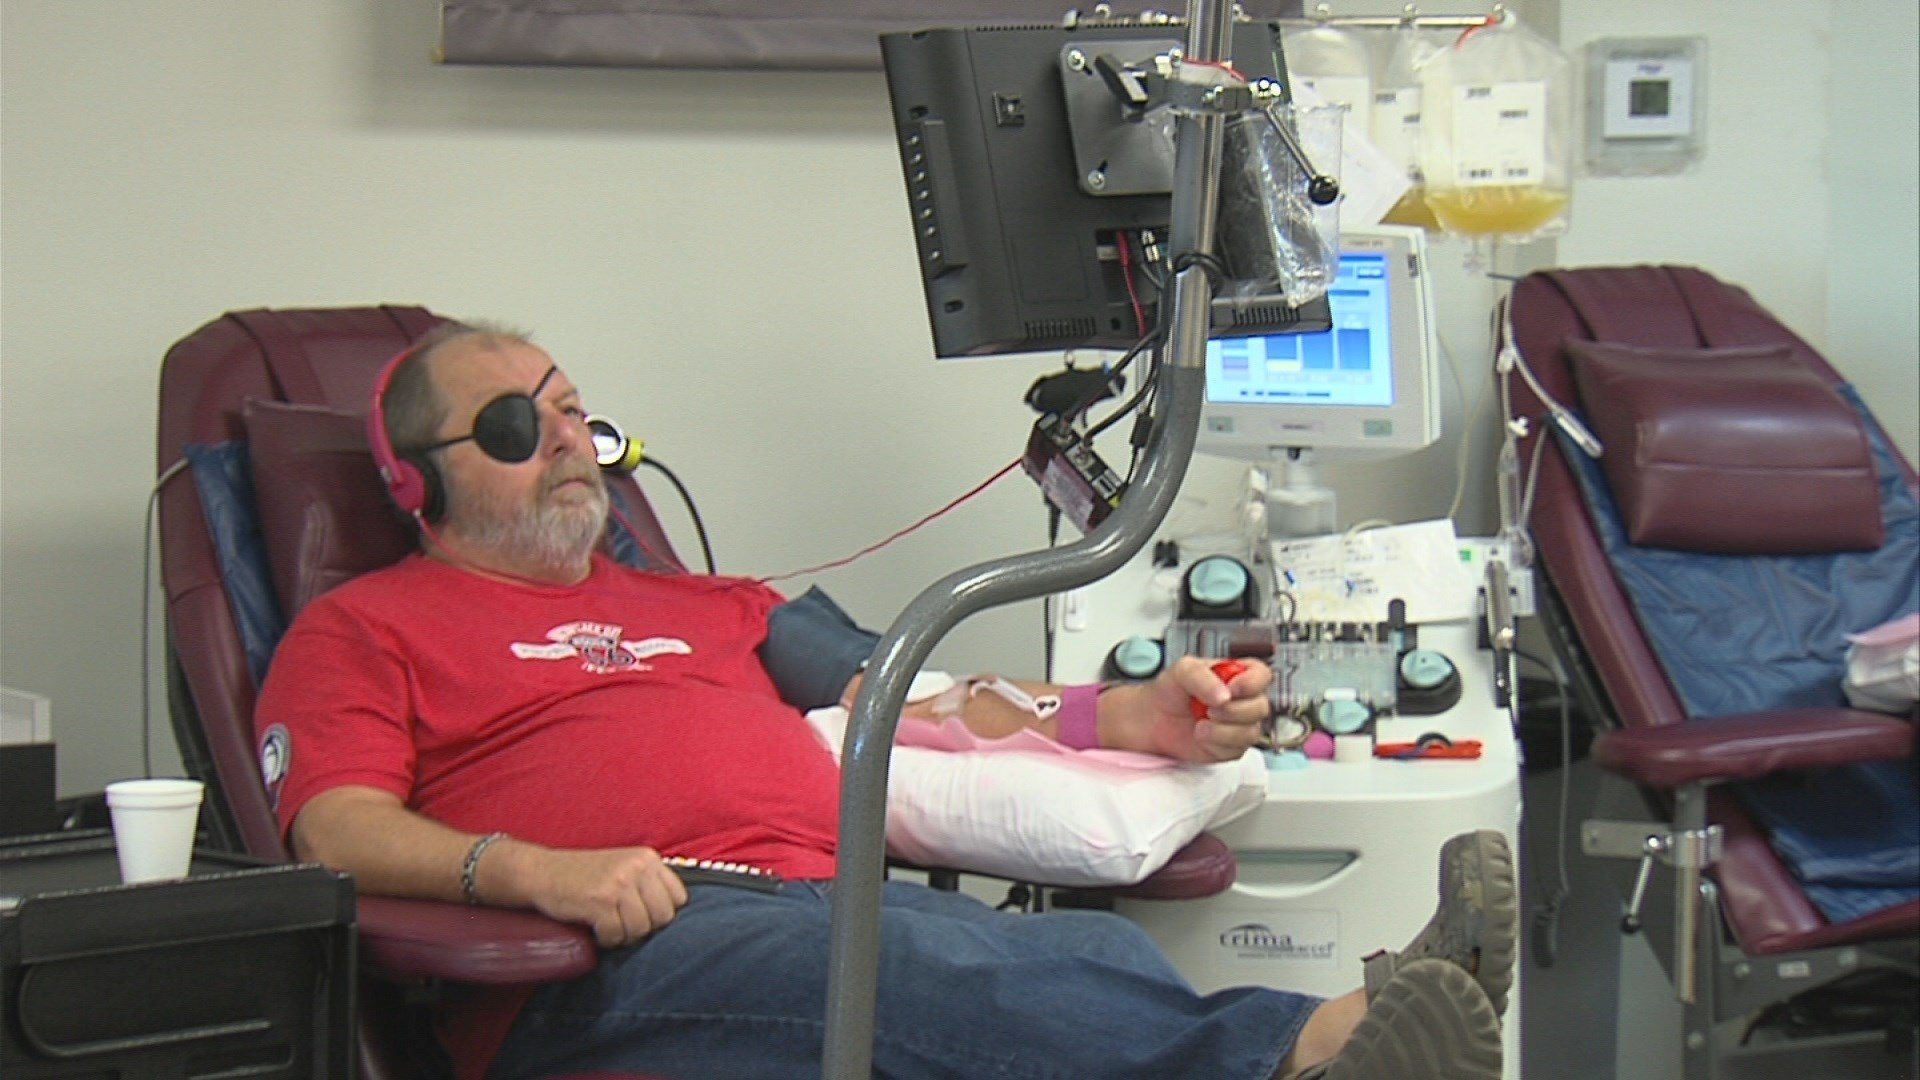 UBS encouraging Reno blood donations after Vegas shooting